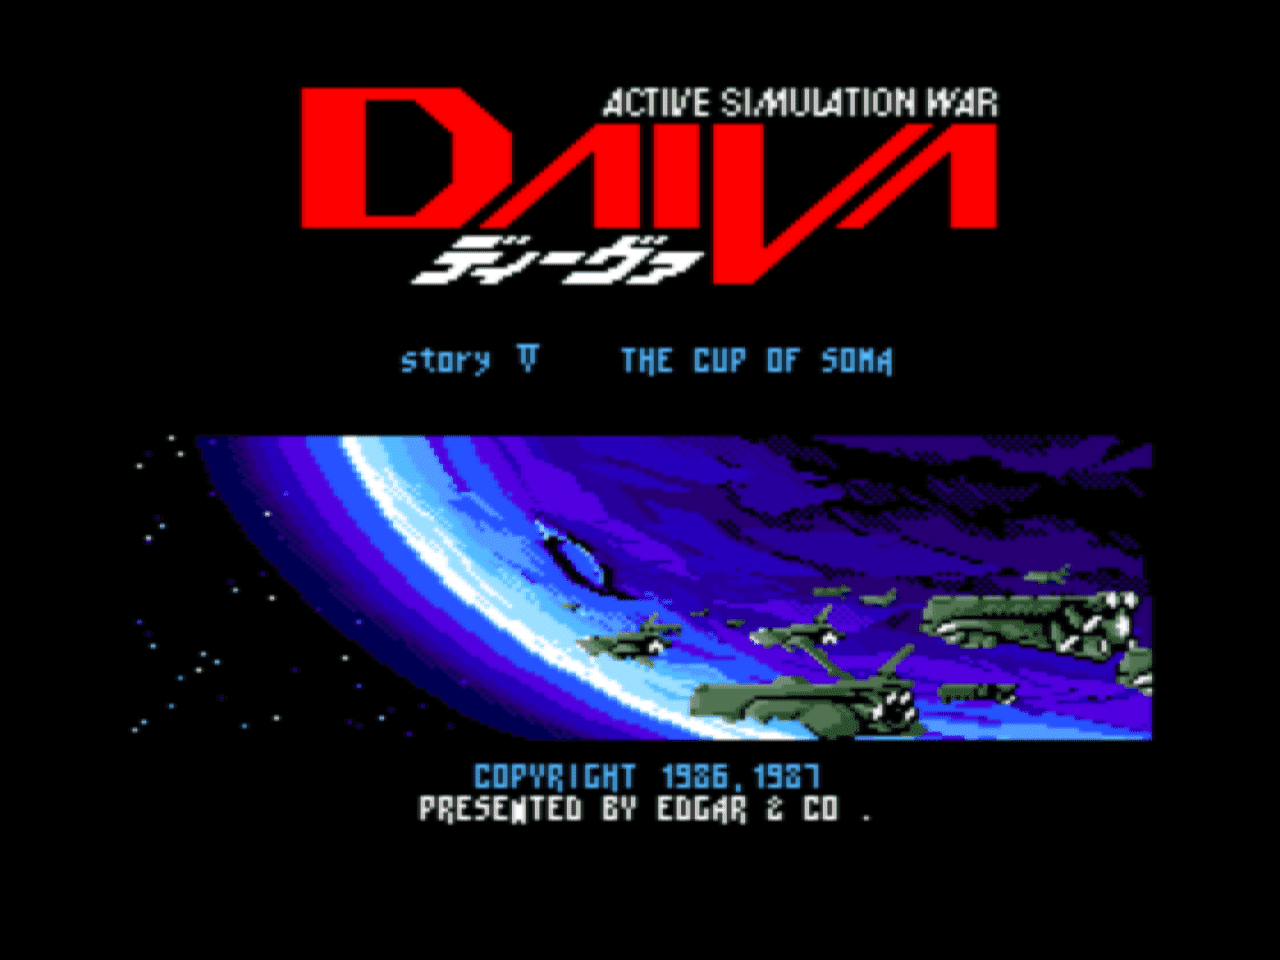 Daiva Story 5 - The Cup of Soma